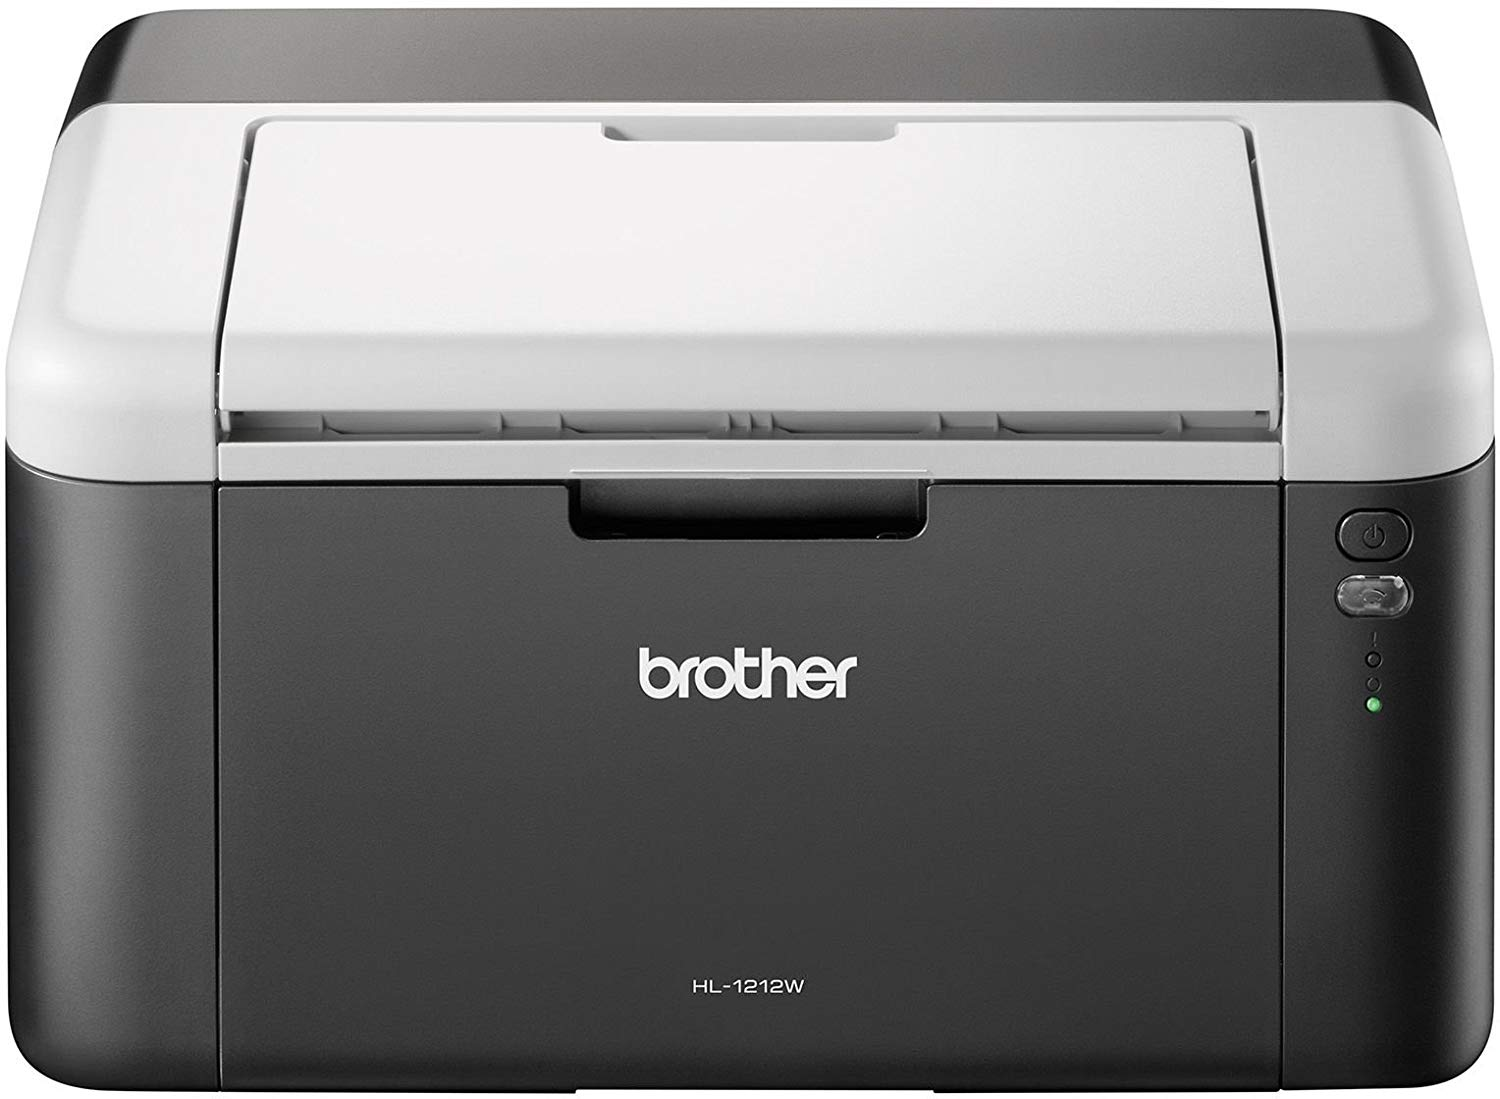 Brother HL-1212W Mono Laser Printer | Wireless & PC Connected